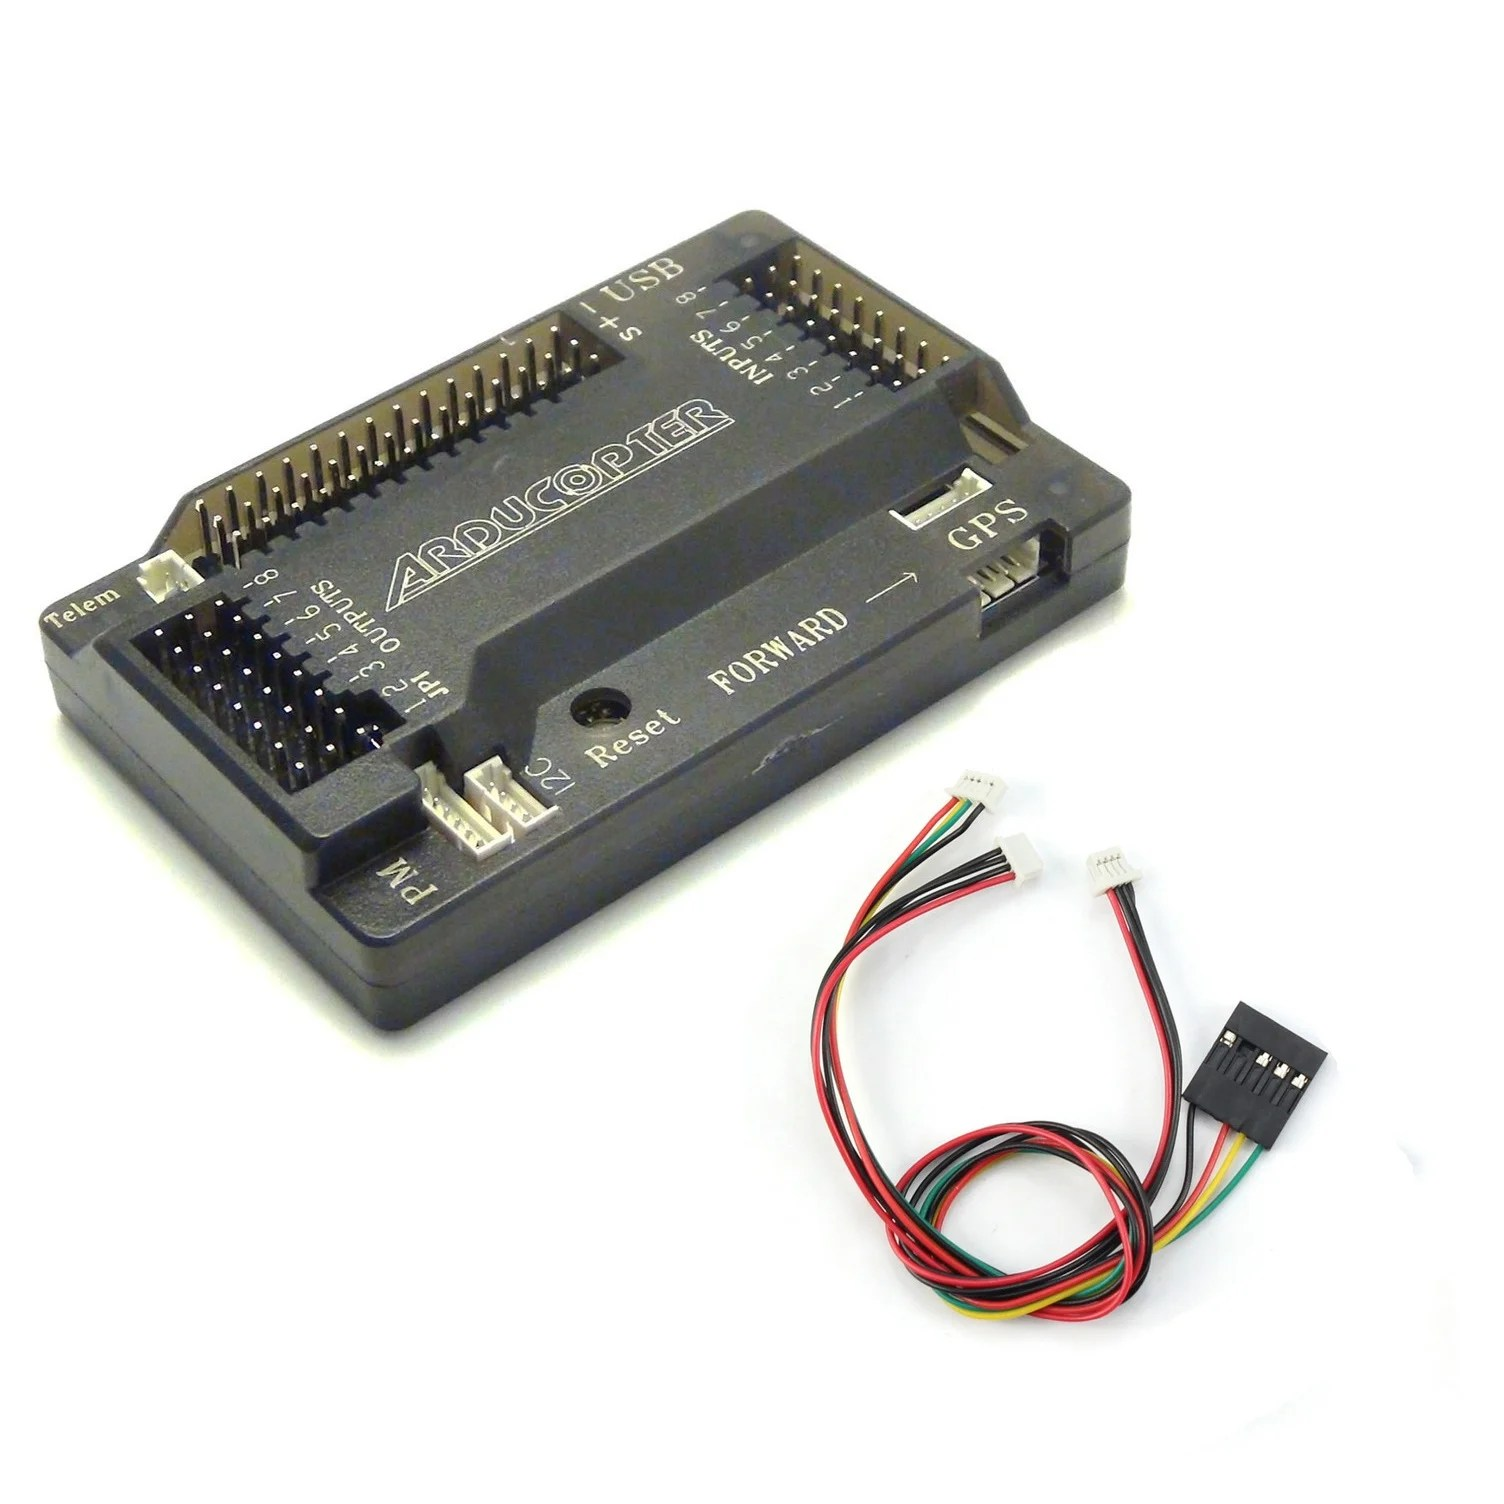 hight resolution of apm 2 8 flight controller with built in compass